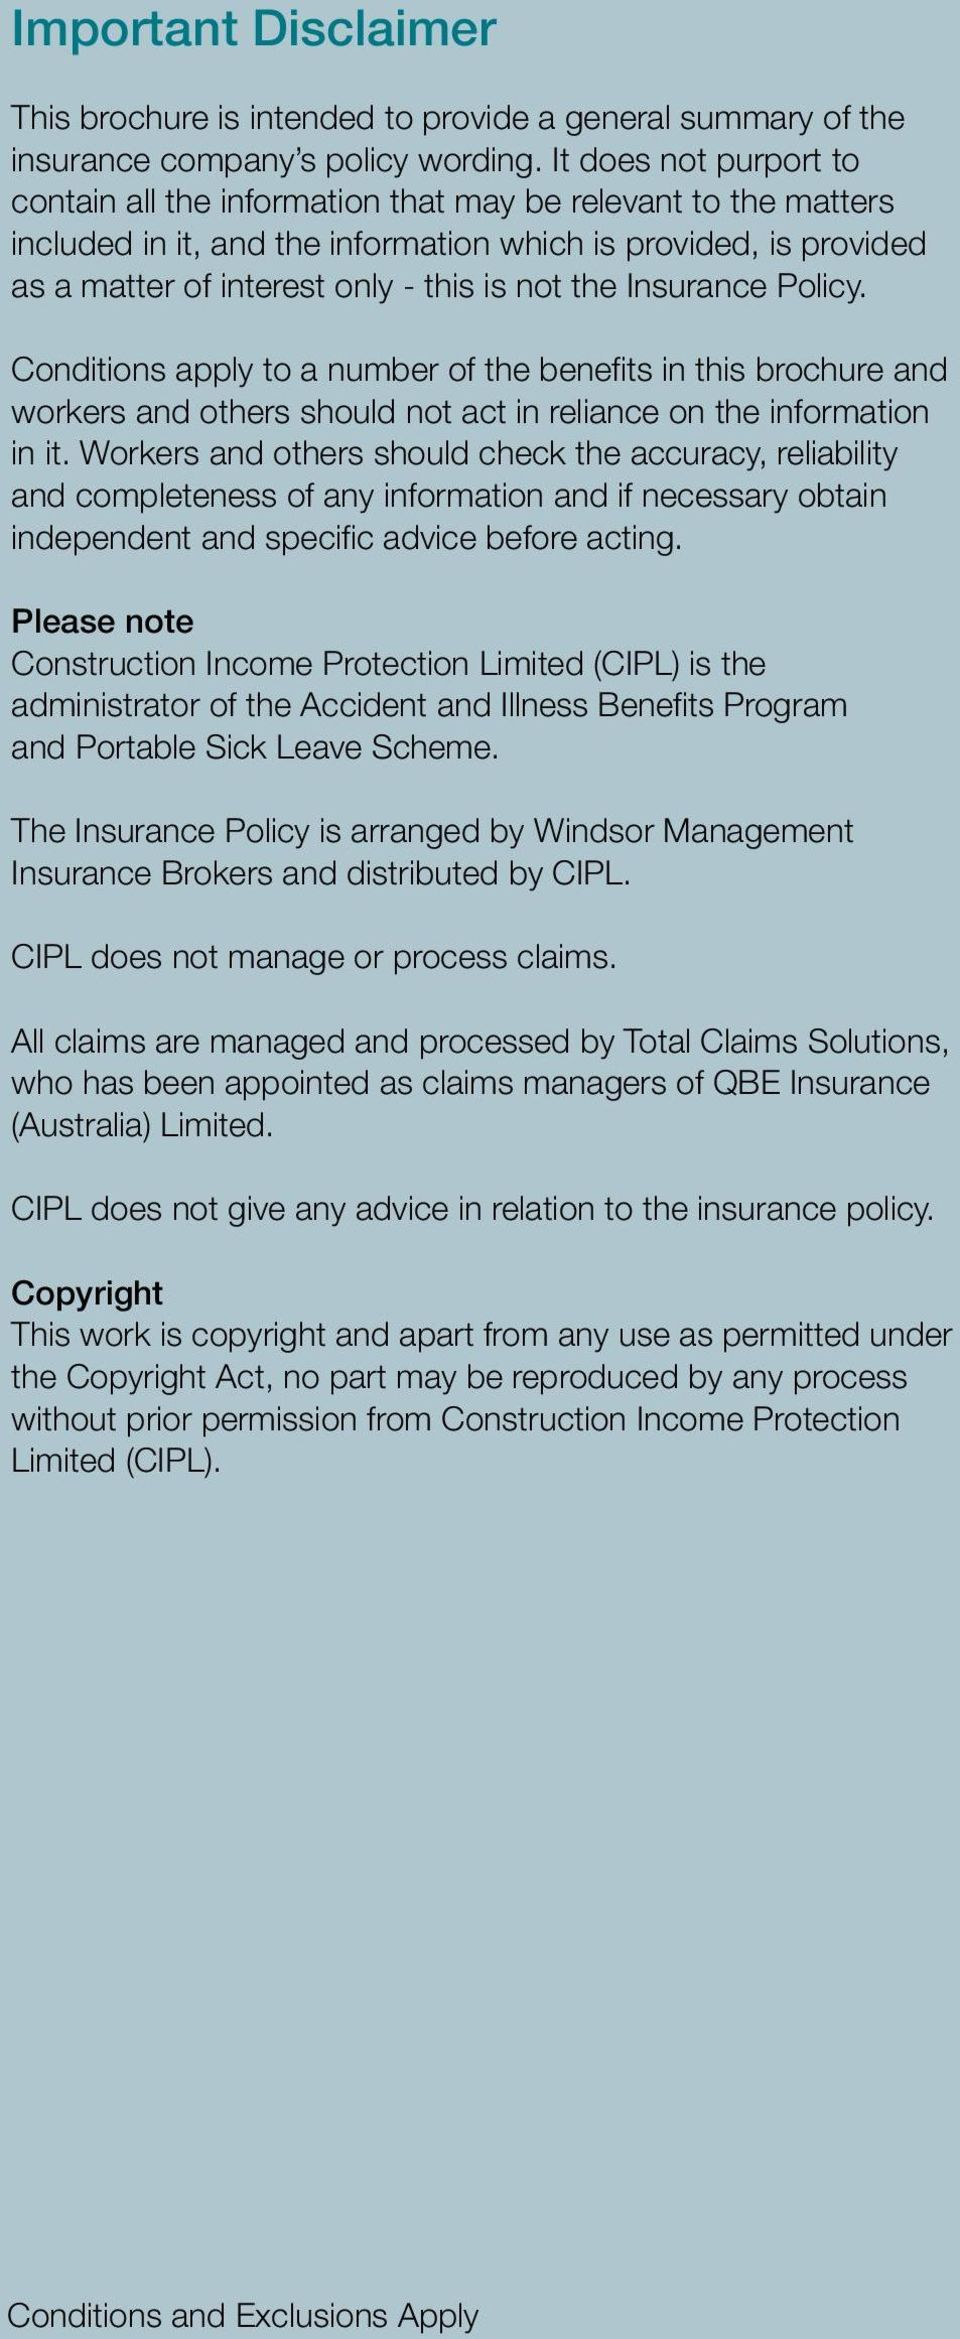 the Insurance Policy. Conditions apply to a number of the benefits in this brochure and workers and others should not act in reliance on the information in it.